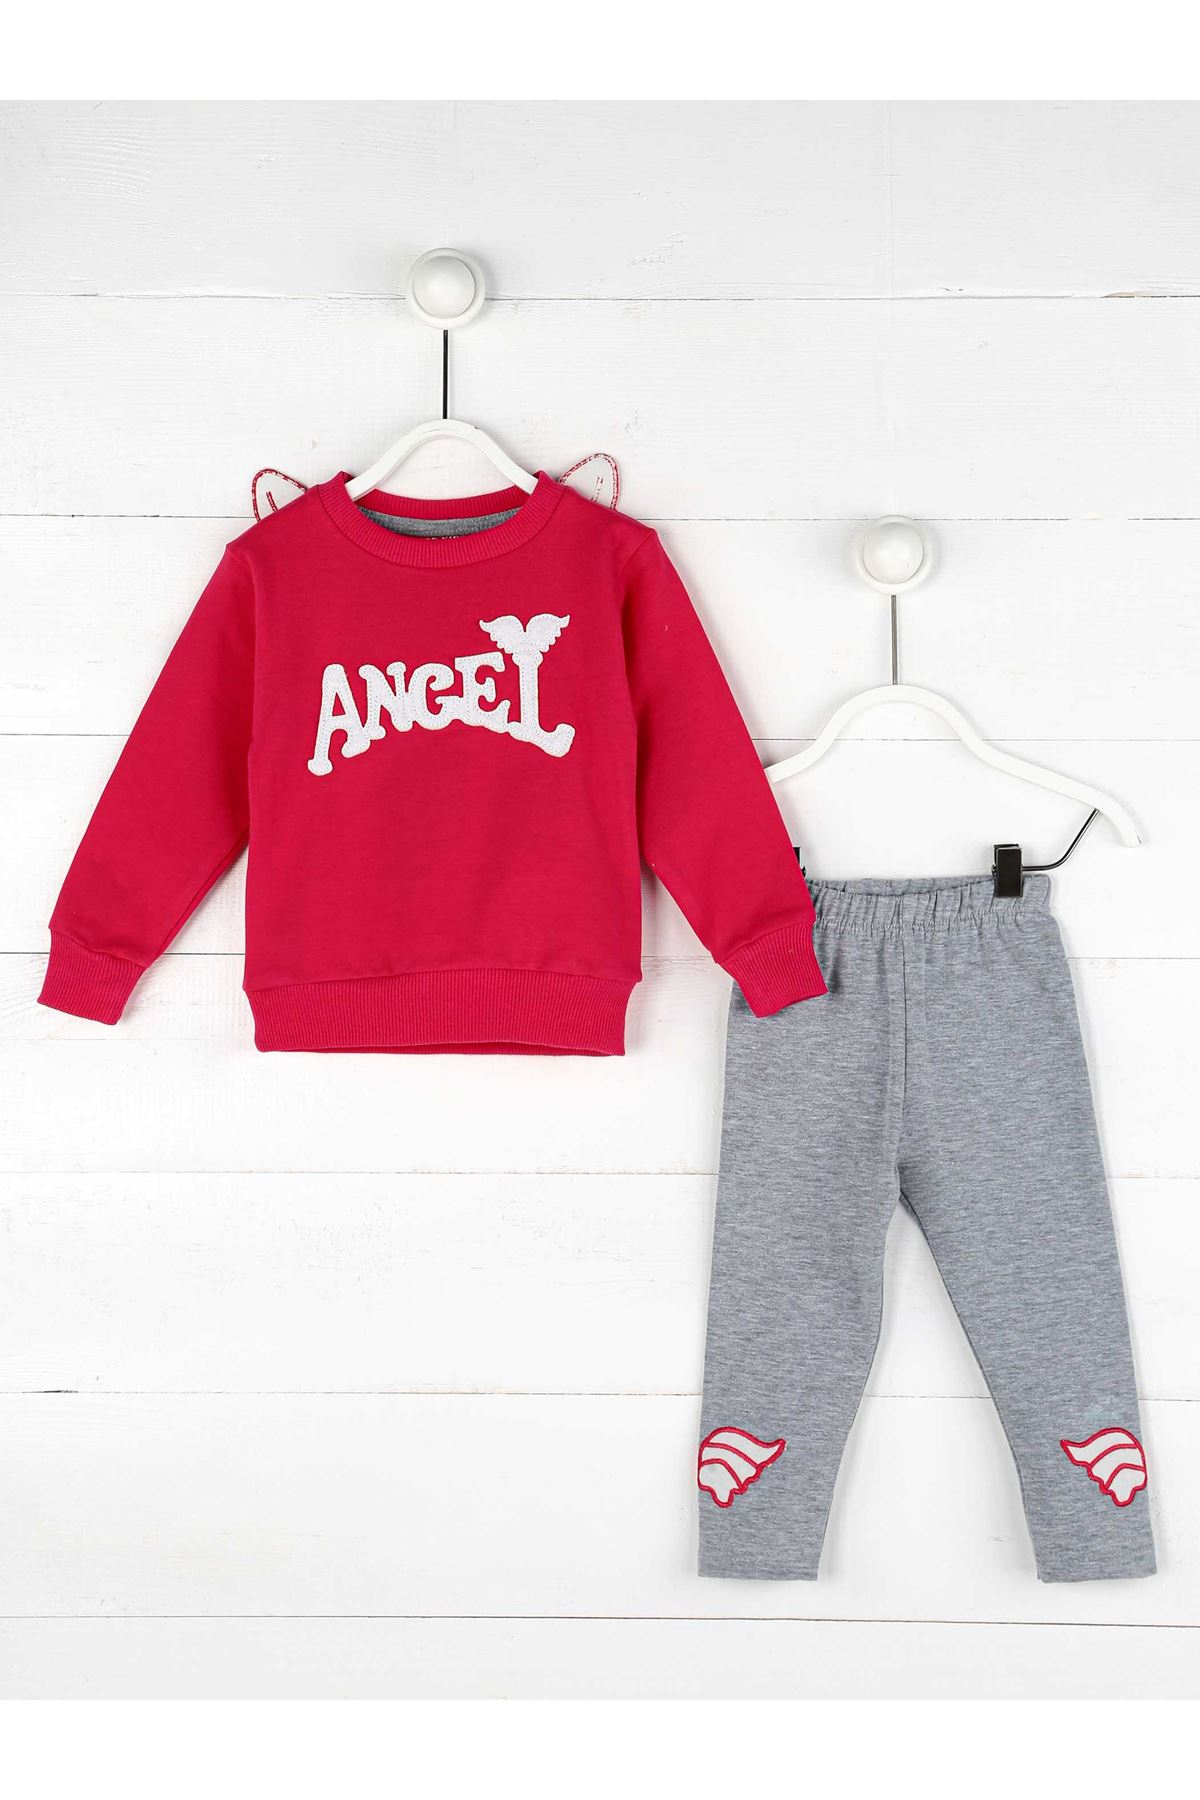 2020 Girl Clothes Autumn Toddler Kids Sets Angel Long Sleeve Costume Children's Clothing Set Sweatshirt + Tights Pants Suits Pants Model